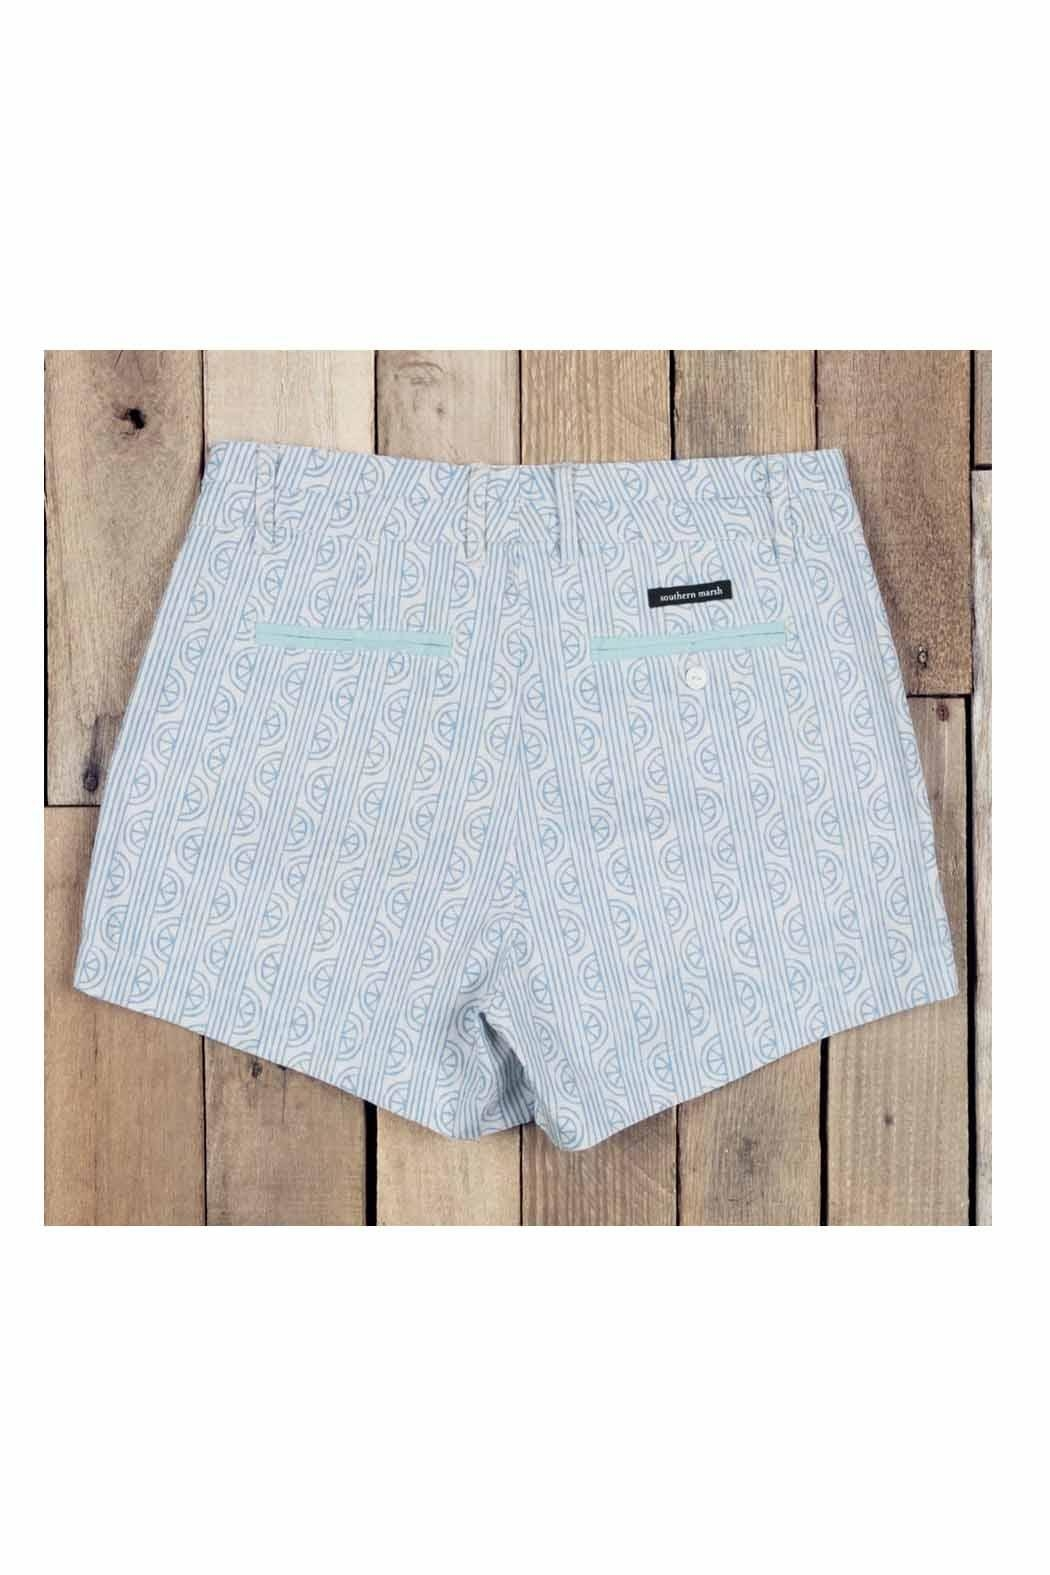 Southern Marsh  Teal Patterned Shorts - Side Cropped Image